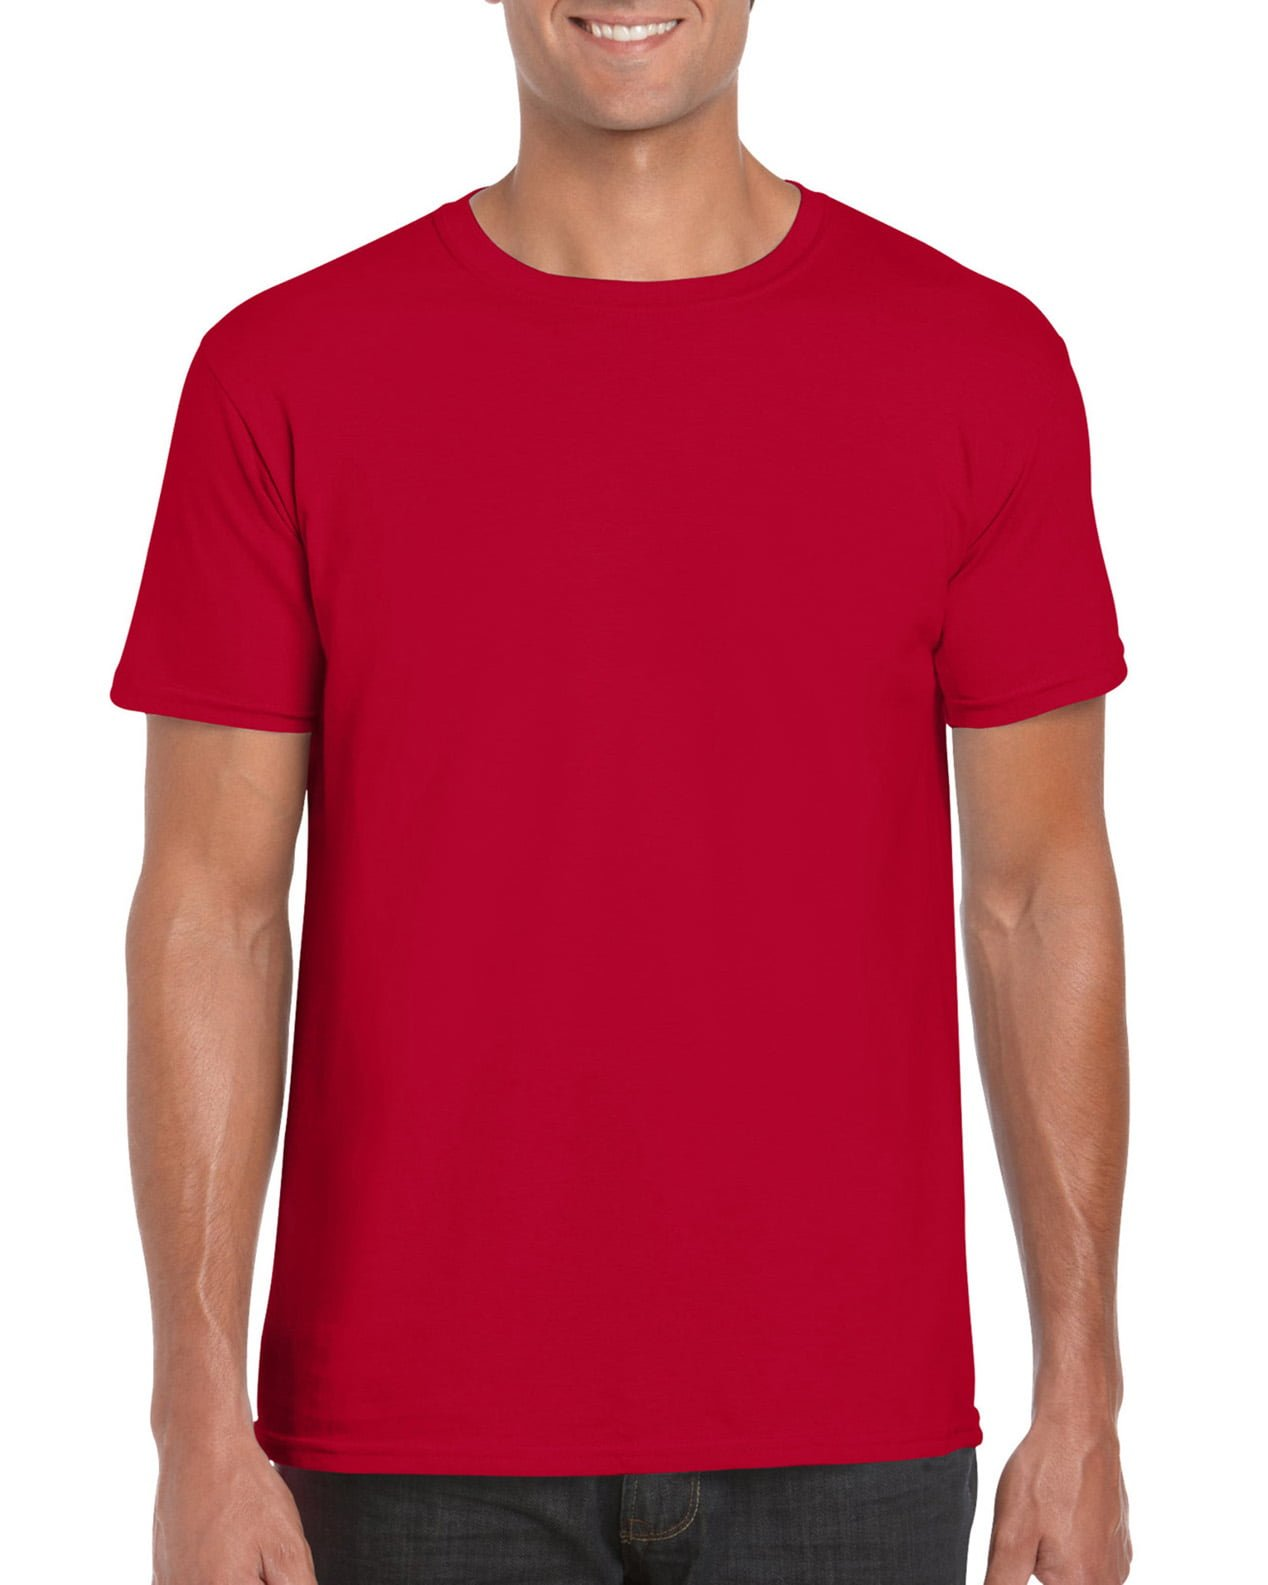 Softstyle Unisex Tee-Cherry Red